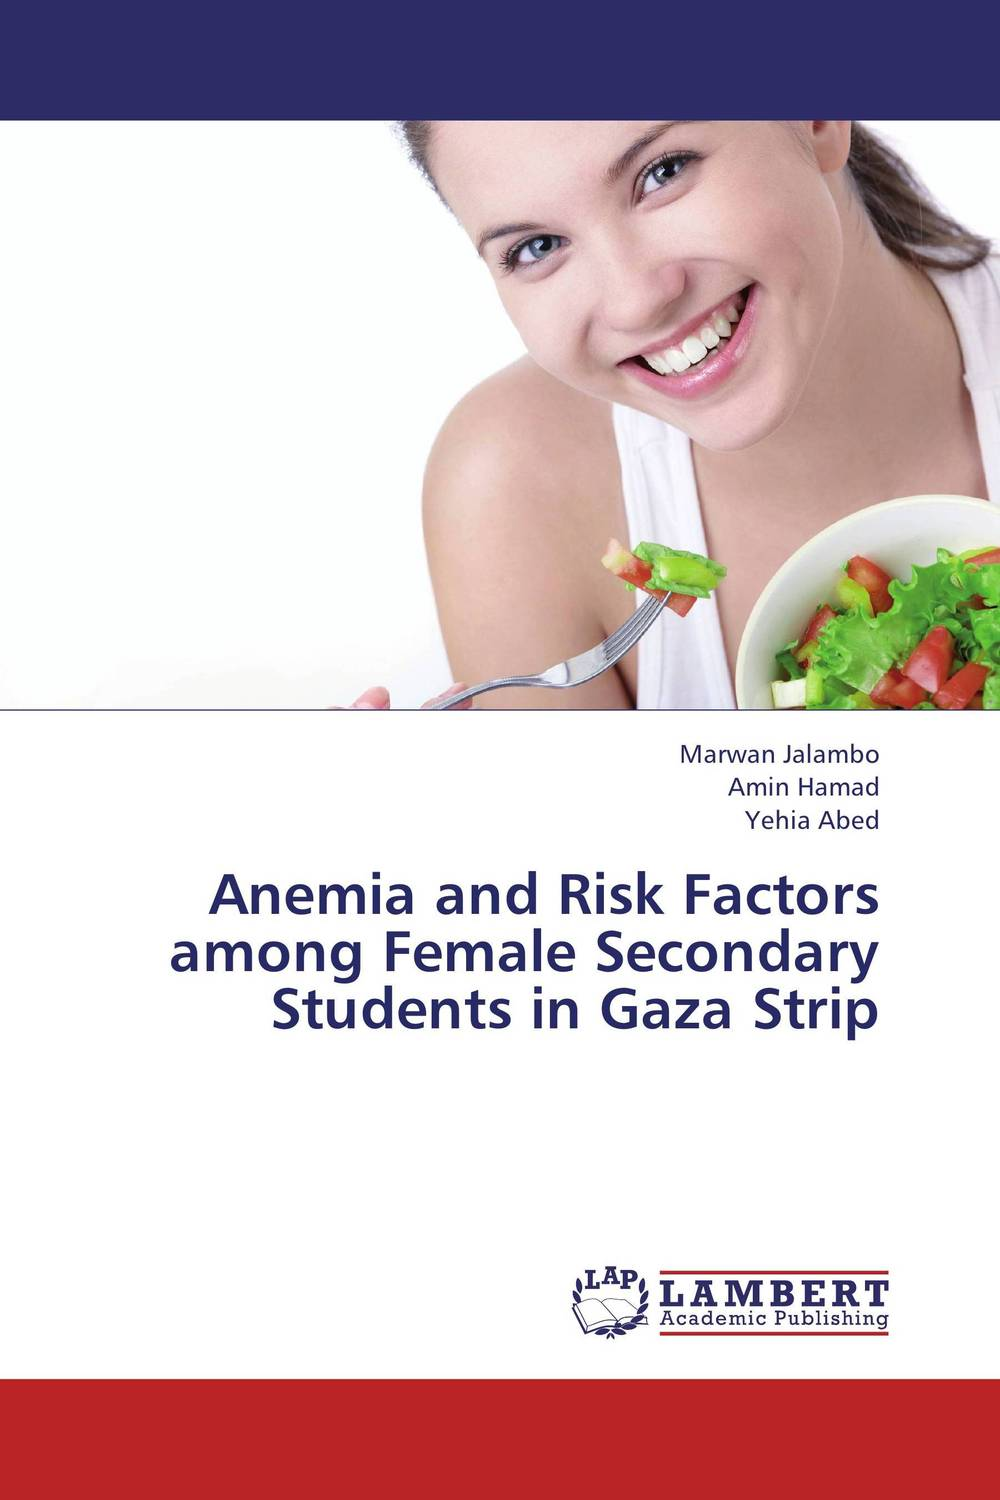 Anemia and Risk Factors among Female Secondary Students in Gaza Strip relationship between entomopathogenic nematodes and some tephritids